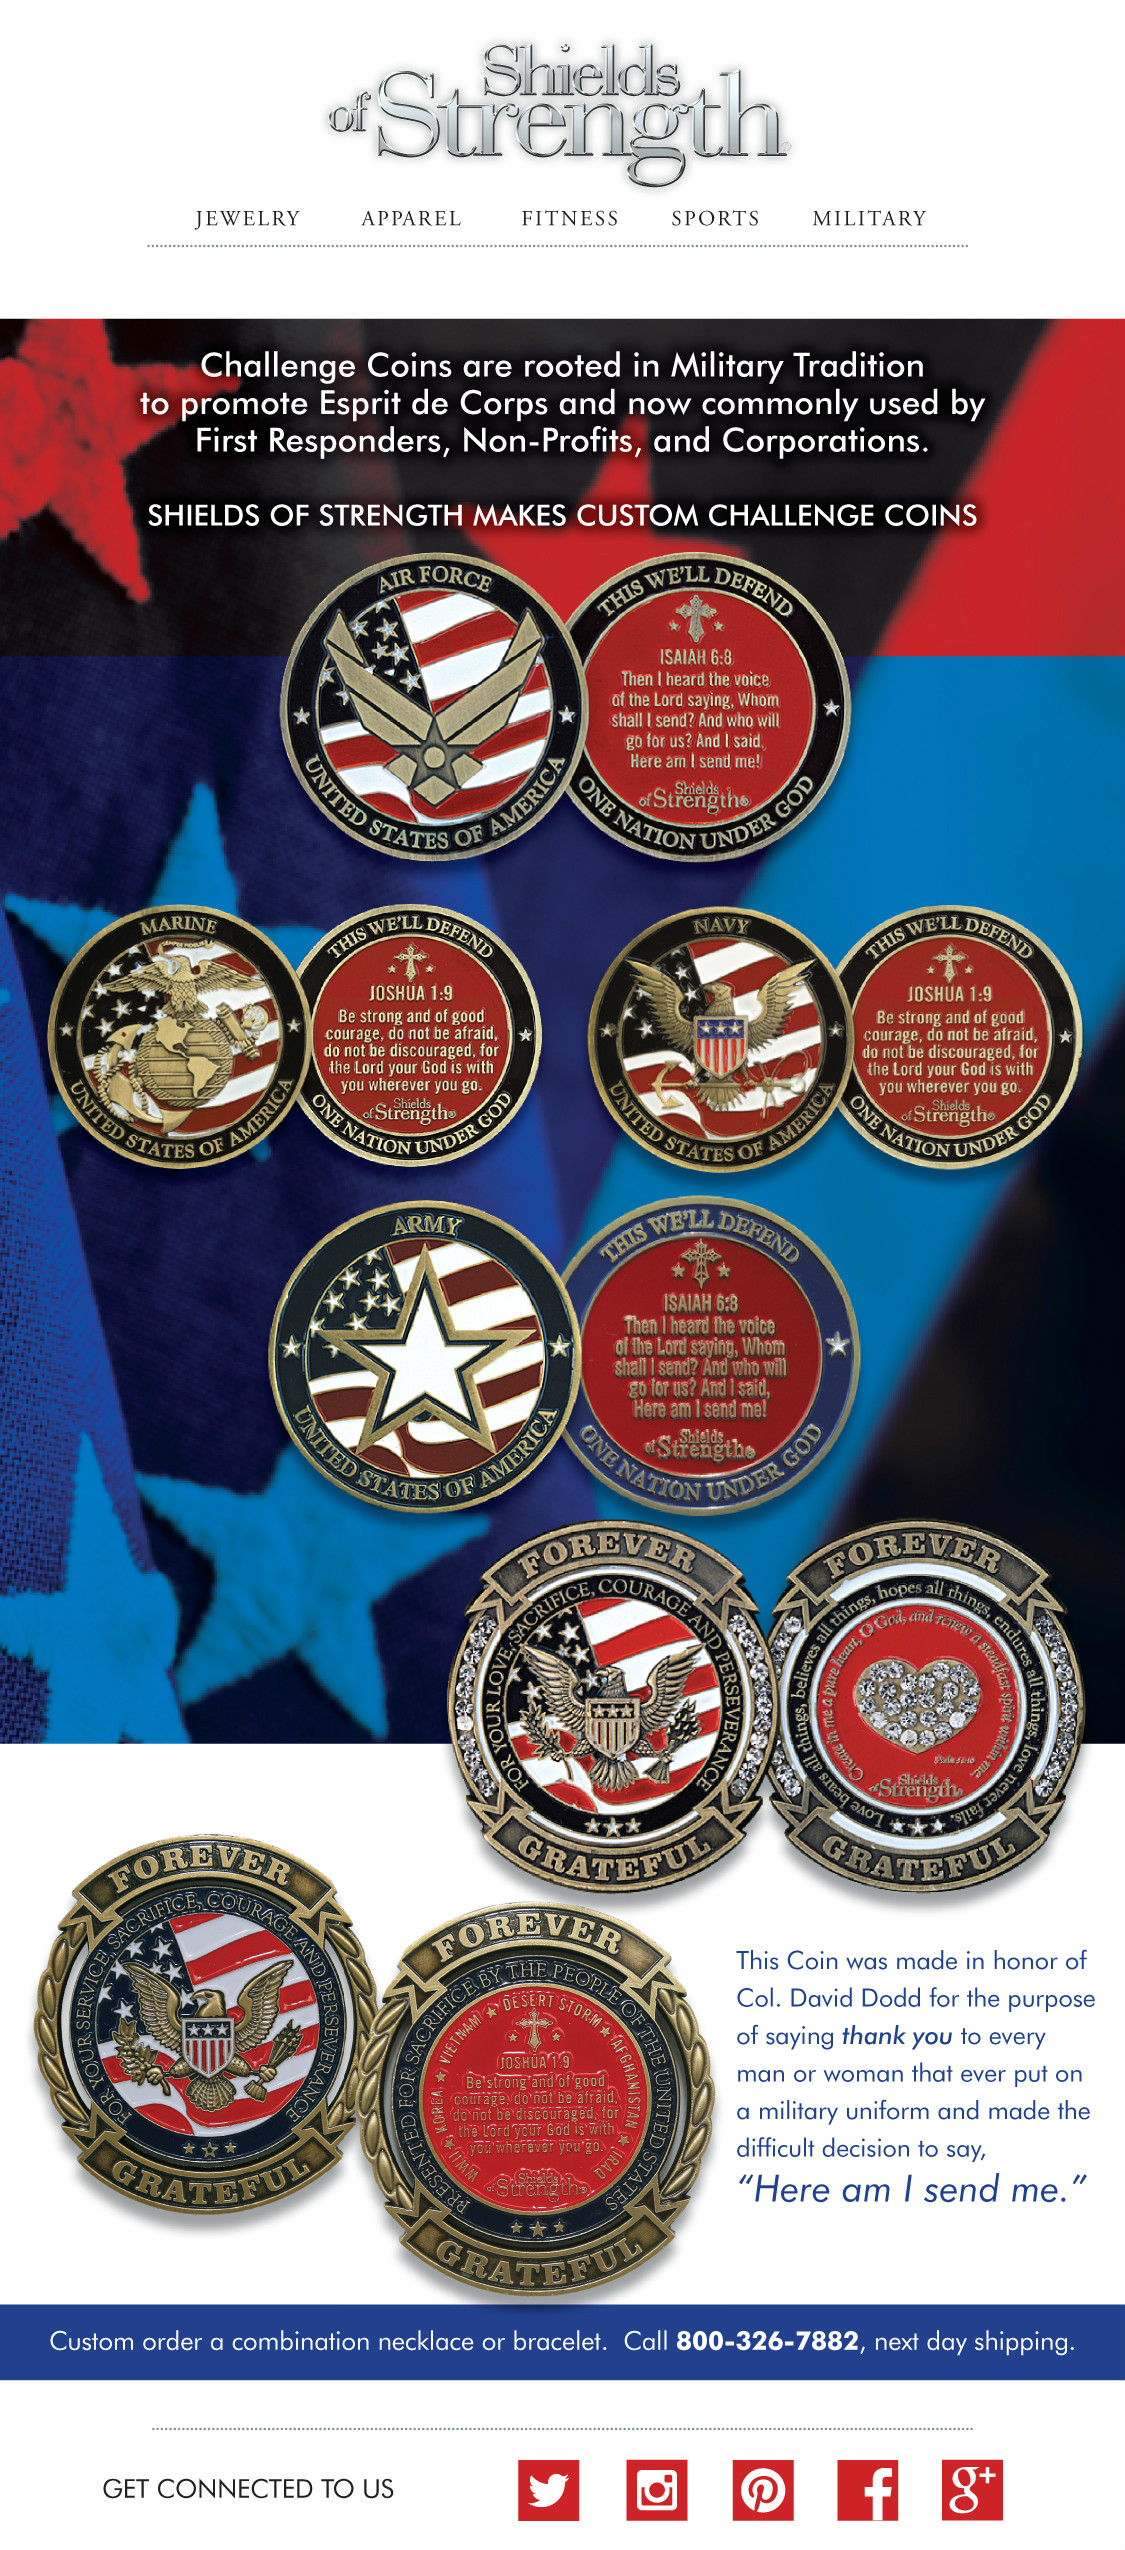 Challenge Coins - Shields of Strength